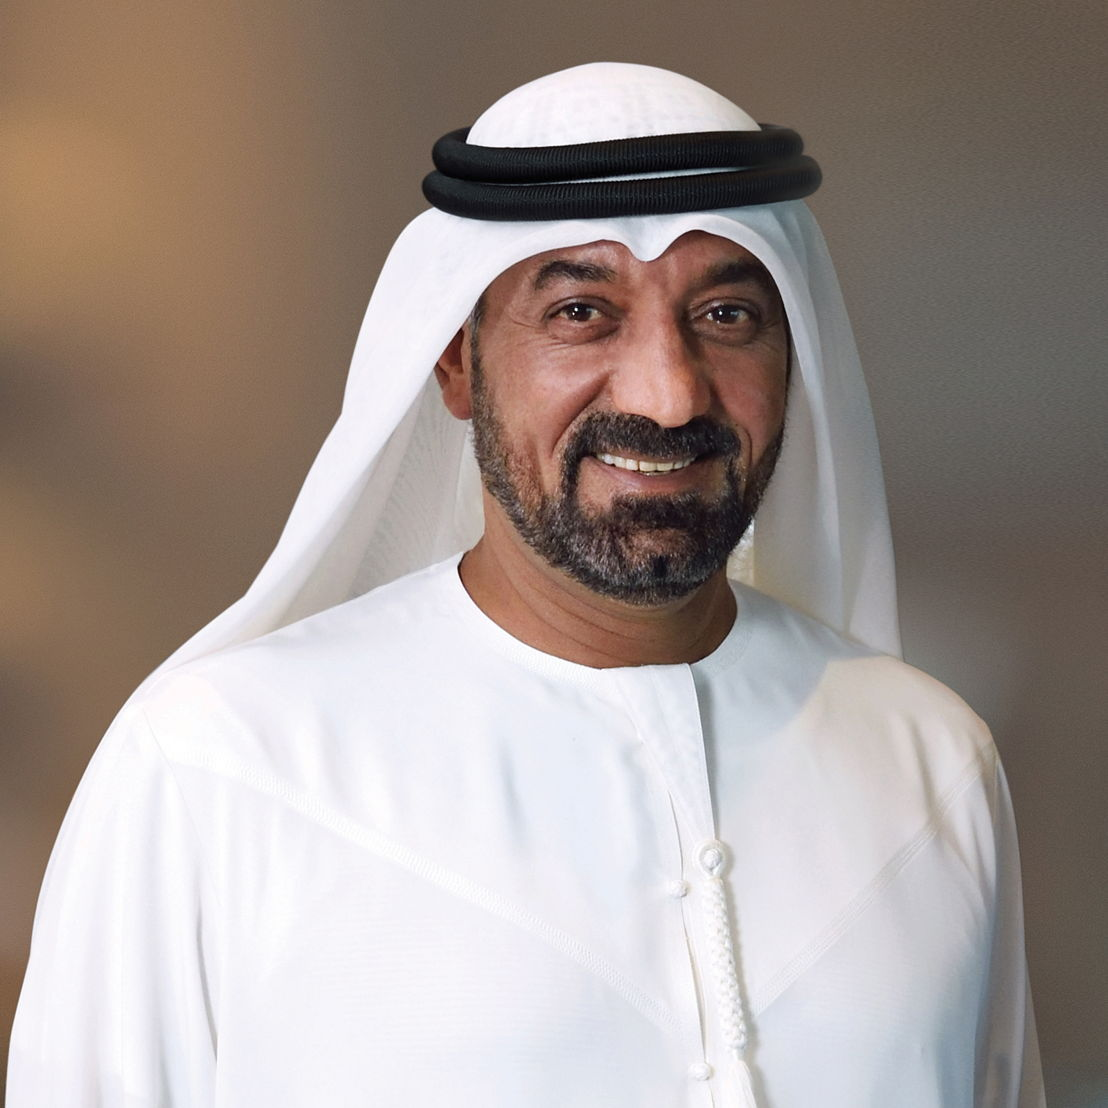 HH Sheikh Ahmed bin Saeed Al Maktoum, Chairman and Chief Executive, Emirates airline and Group, announced Emirates and dnata's 2017/18 financial performance, including the Group's 30th consecutive year of profit.